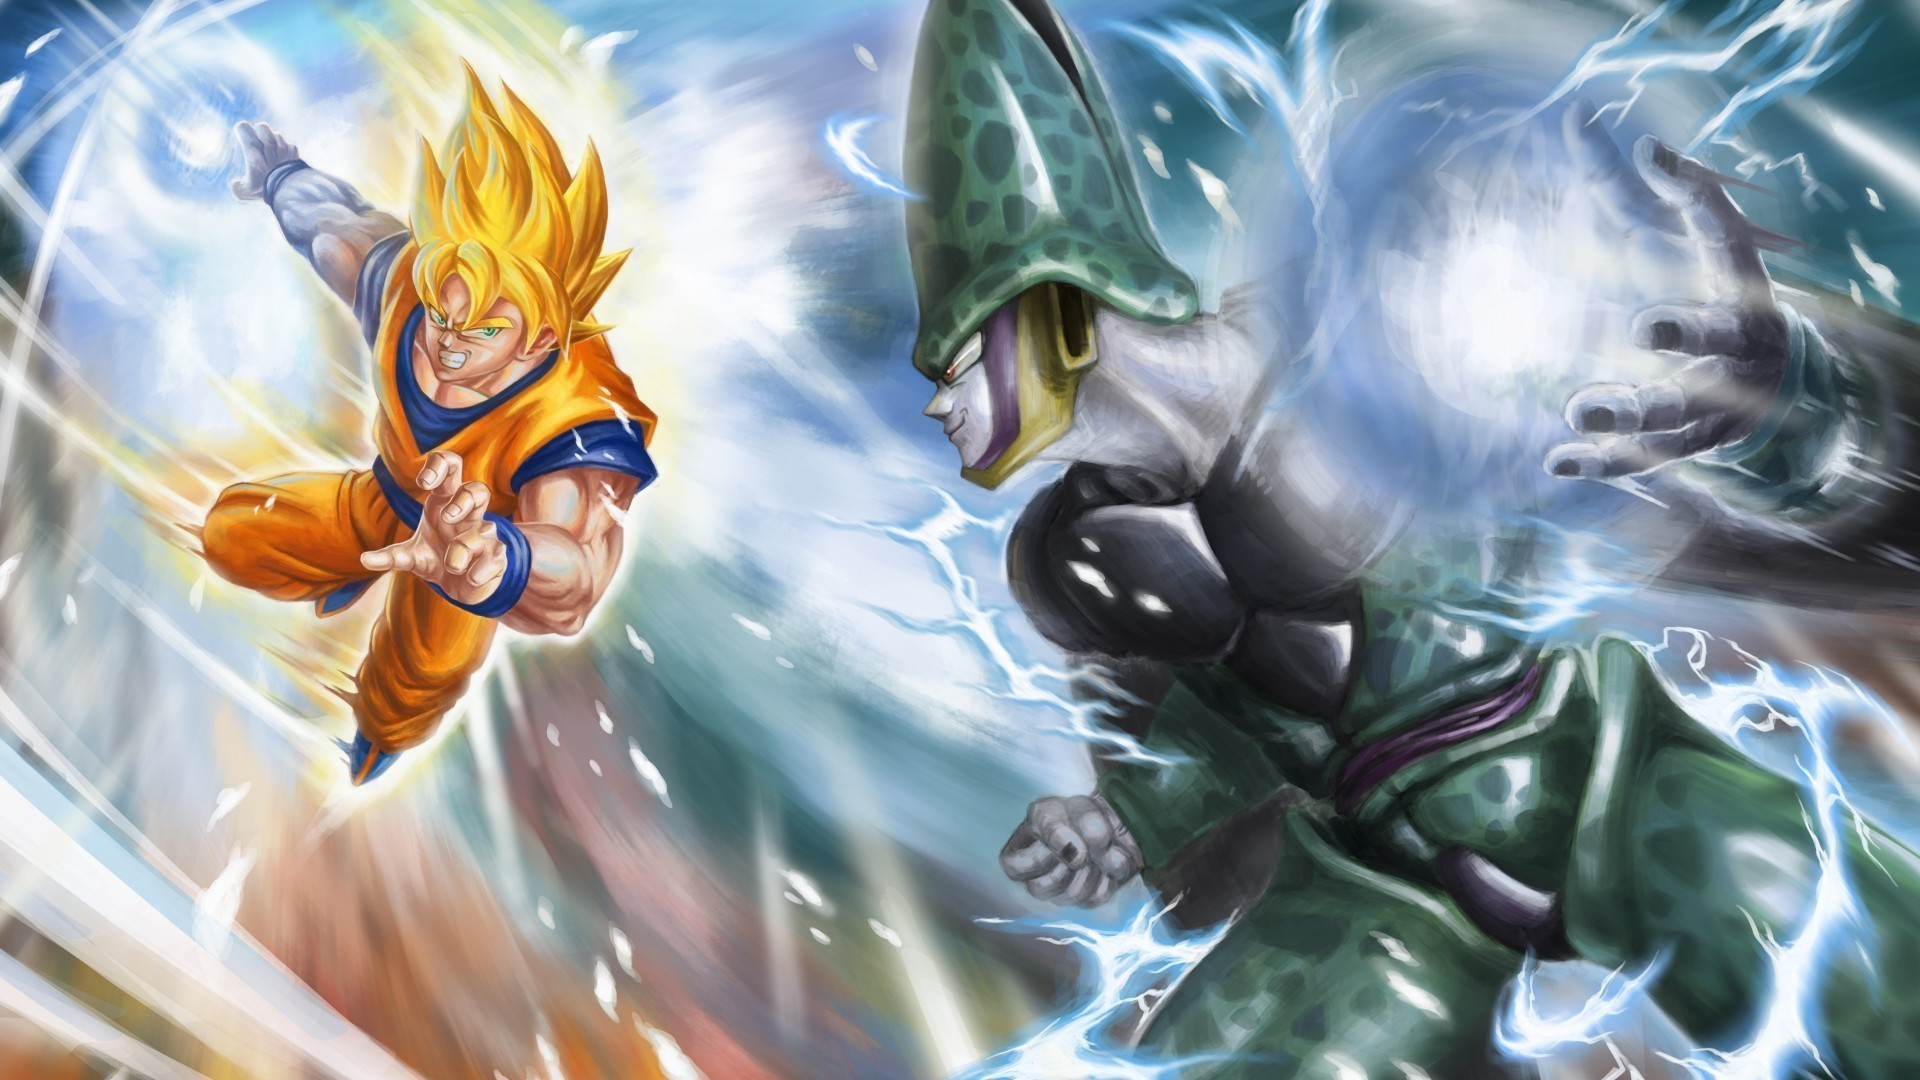 Cell dbz wallpapers wallpapertag - Vegeta wallpapers for mobile ...